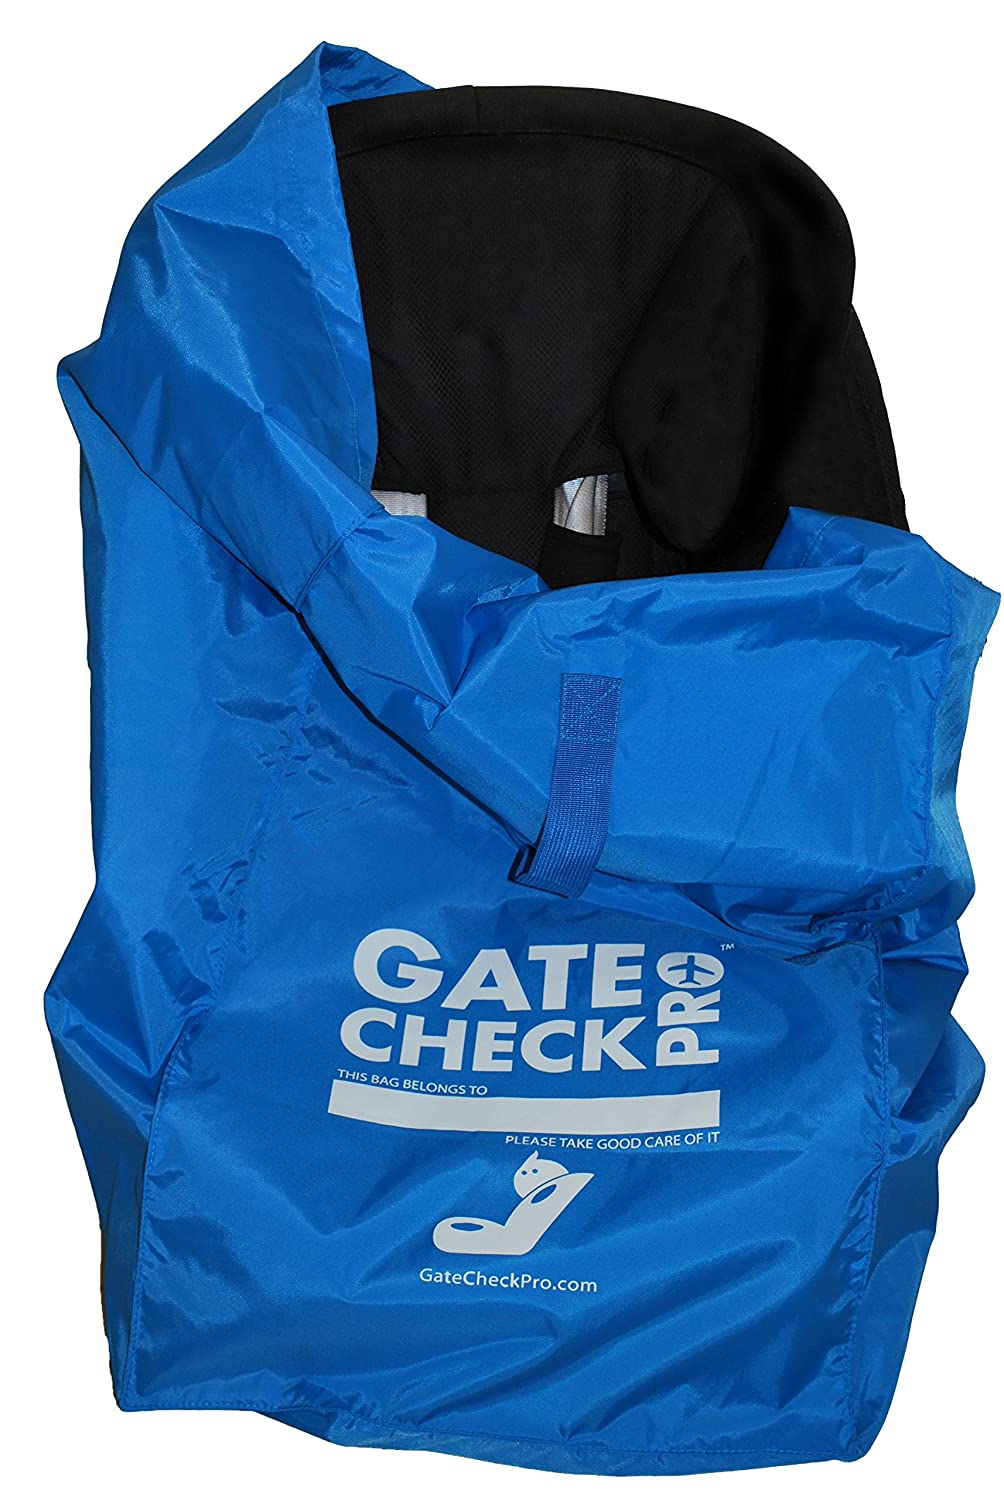 Gate Check PRO Car Seat Carrier & Travel Bag | Ultra Durable & Lightweight Ballistic Nylon | One Size Fits Most | Inc. Infant, Toddler & All-in-one Convertible Models | Perfect for Stress Free Travel!